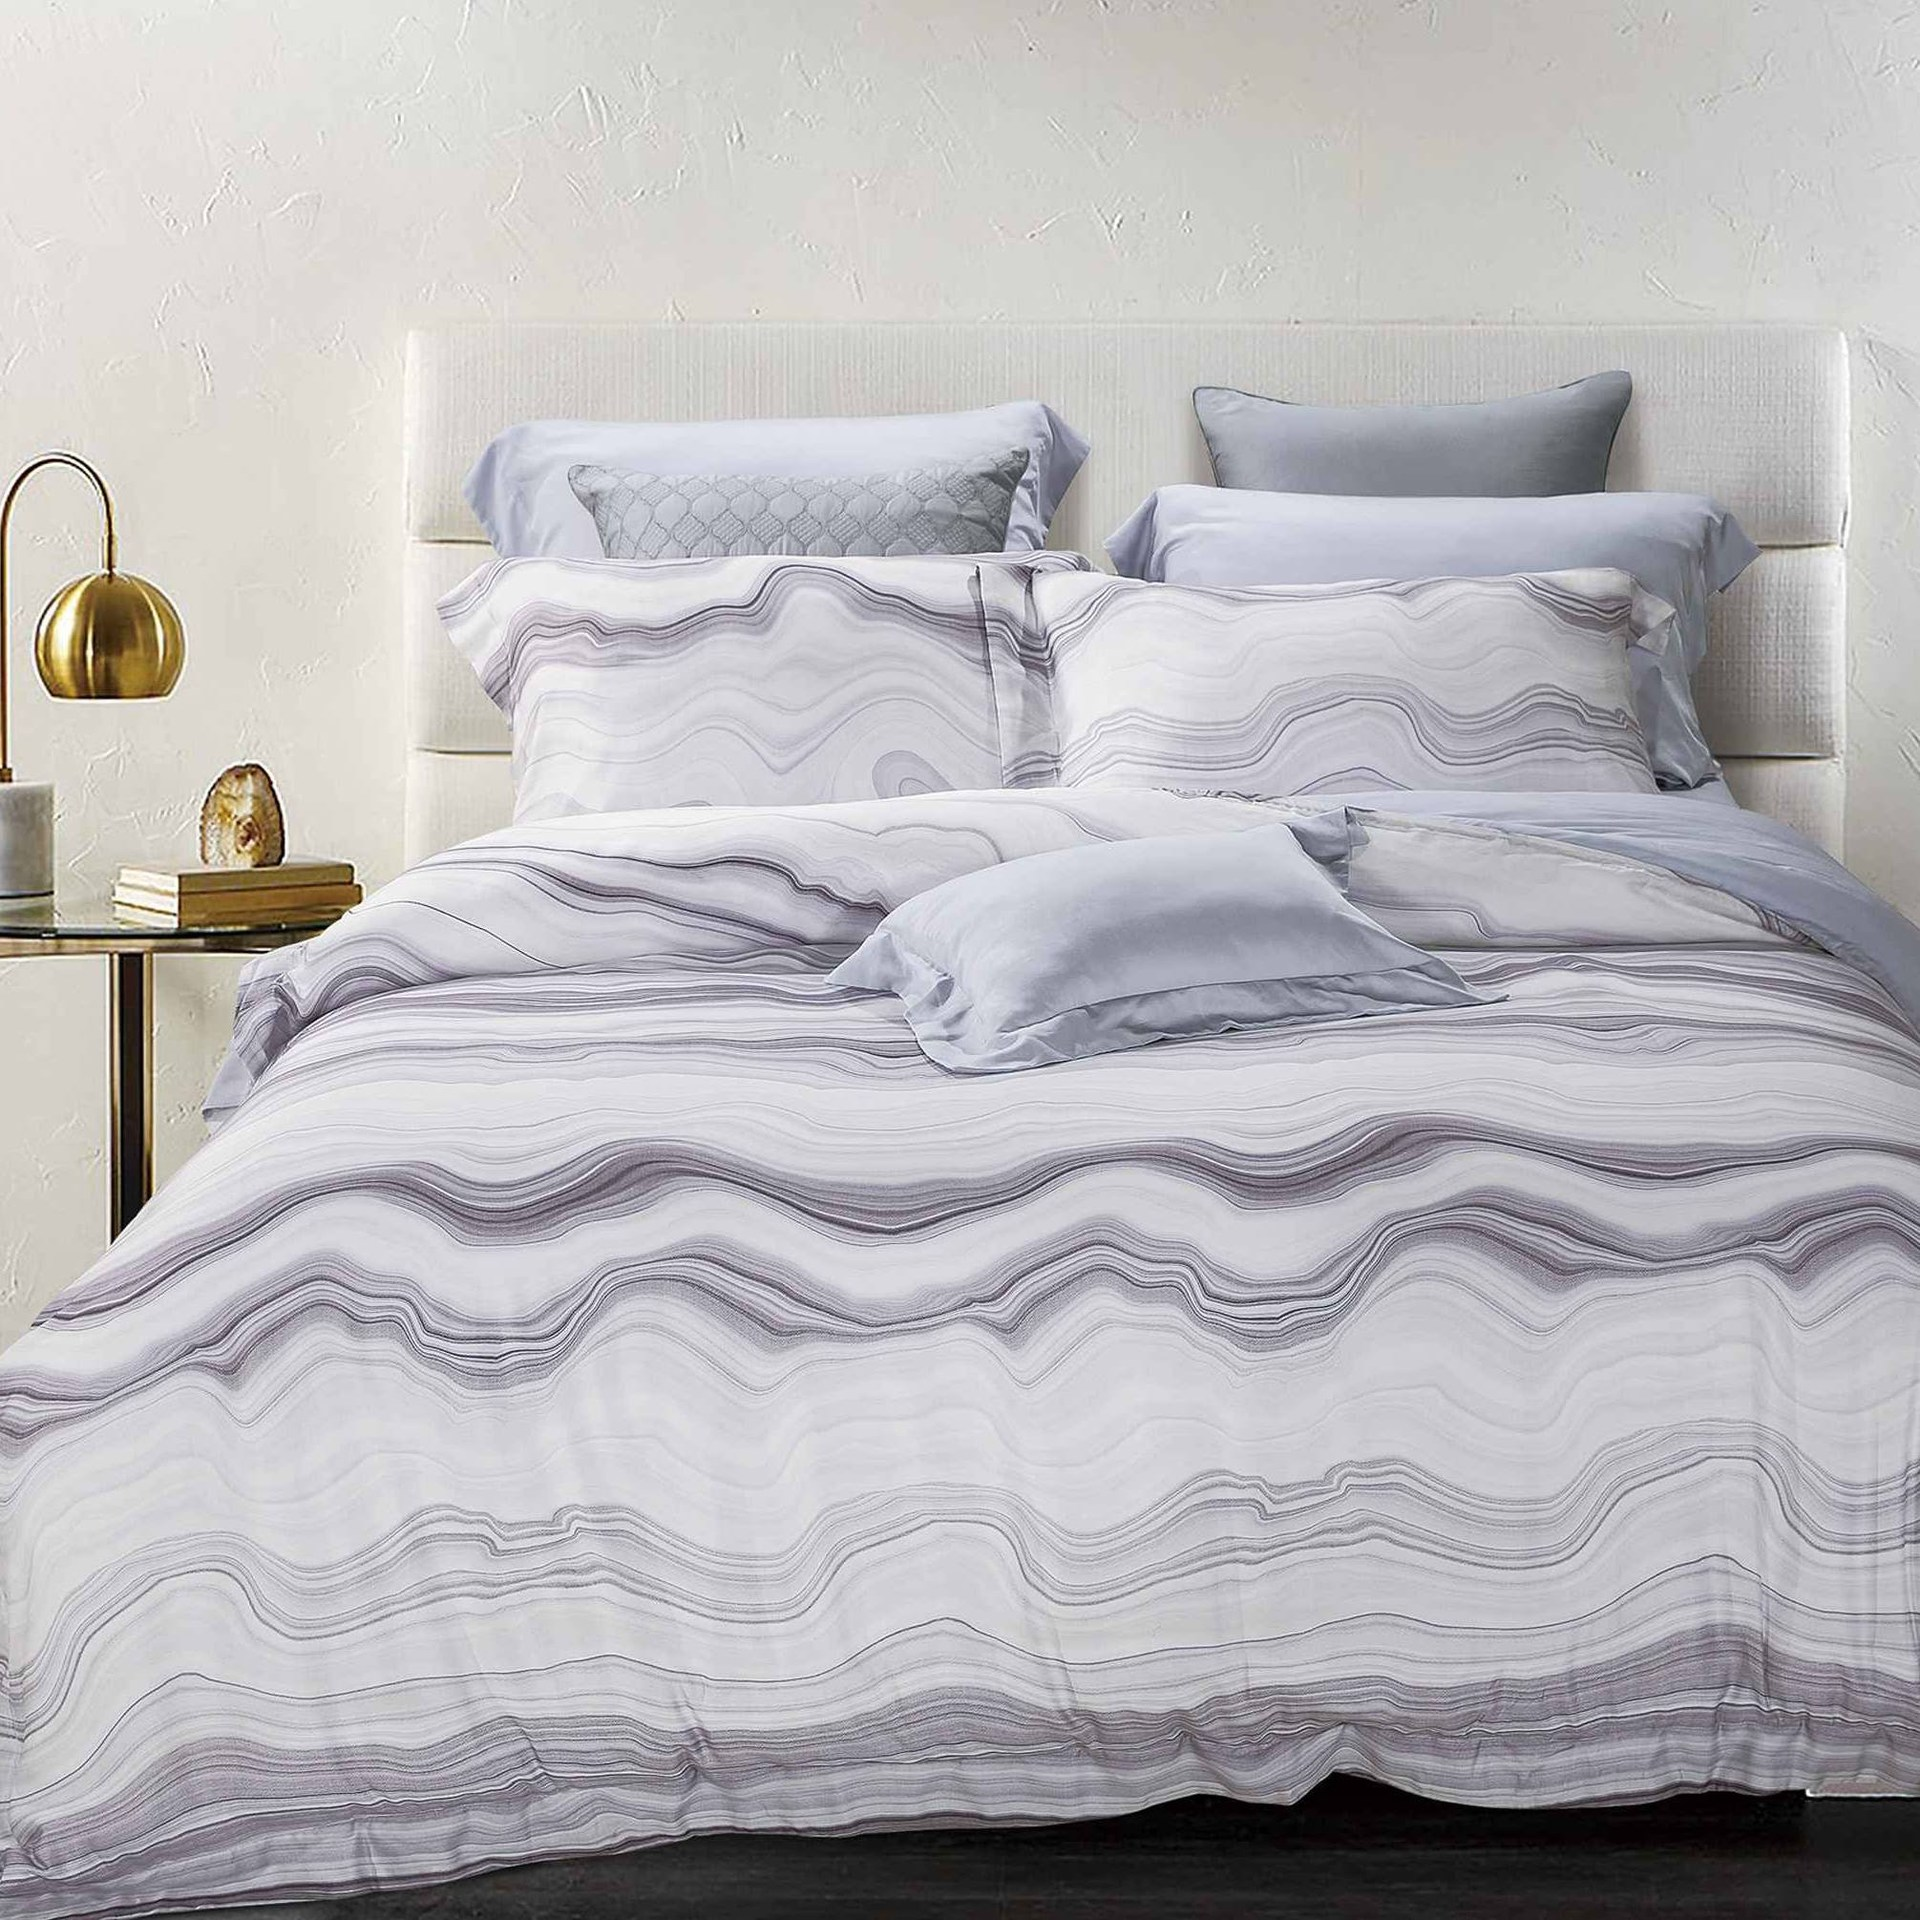 Lyocell Printed Soft Bed Linen 171287